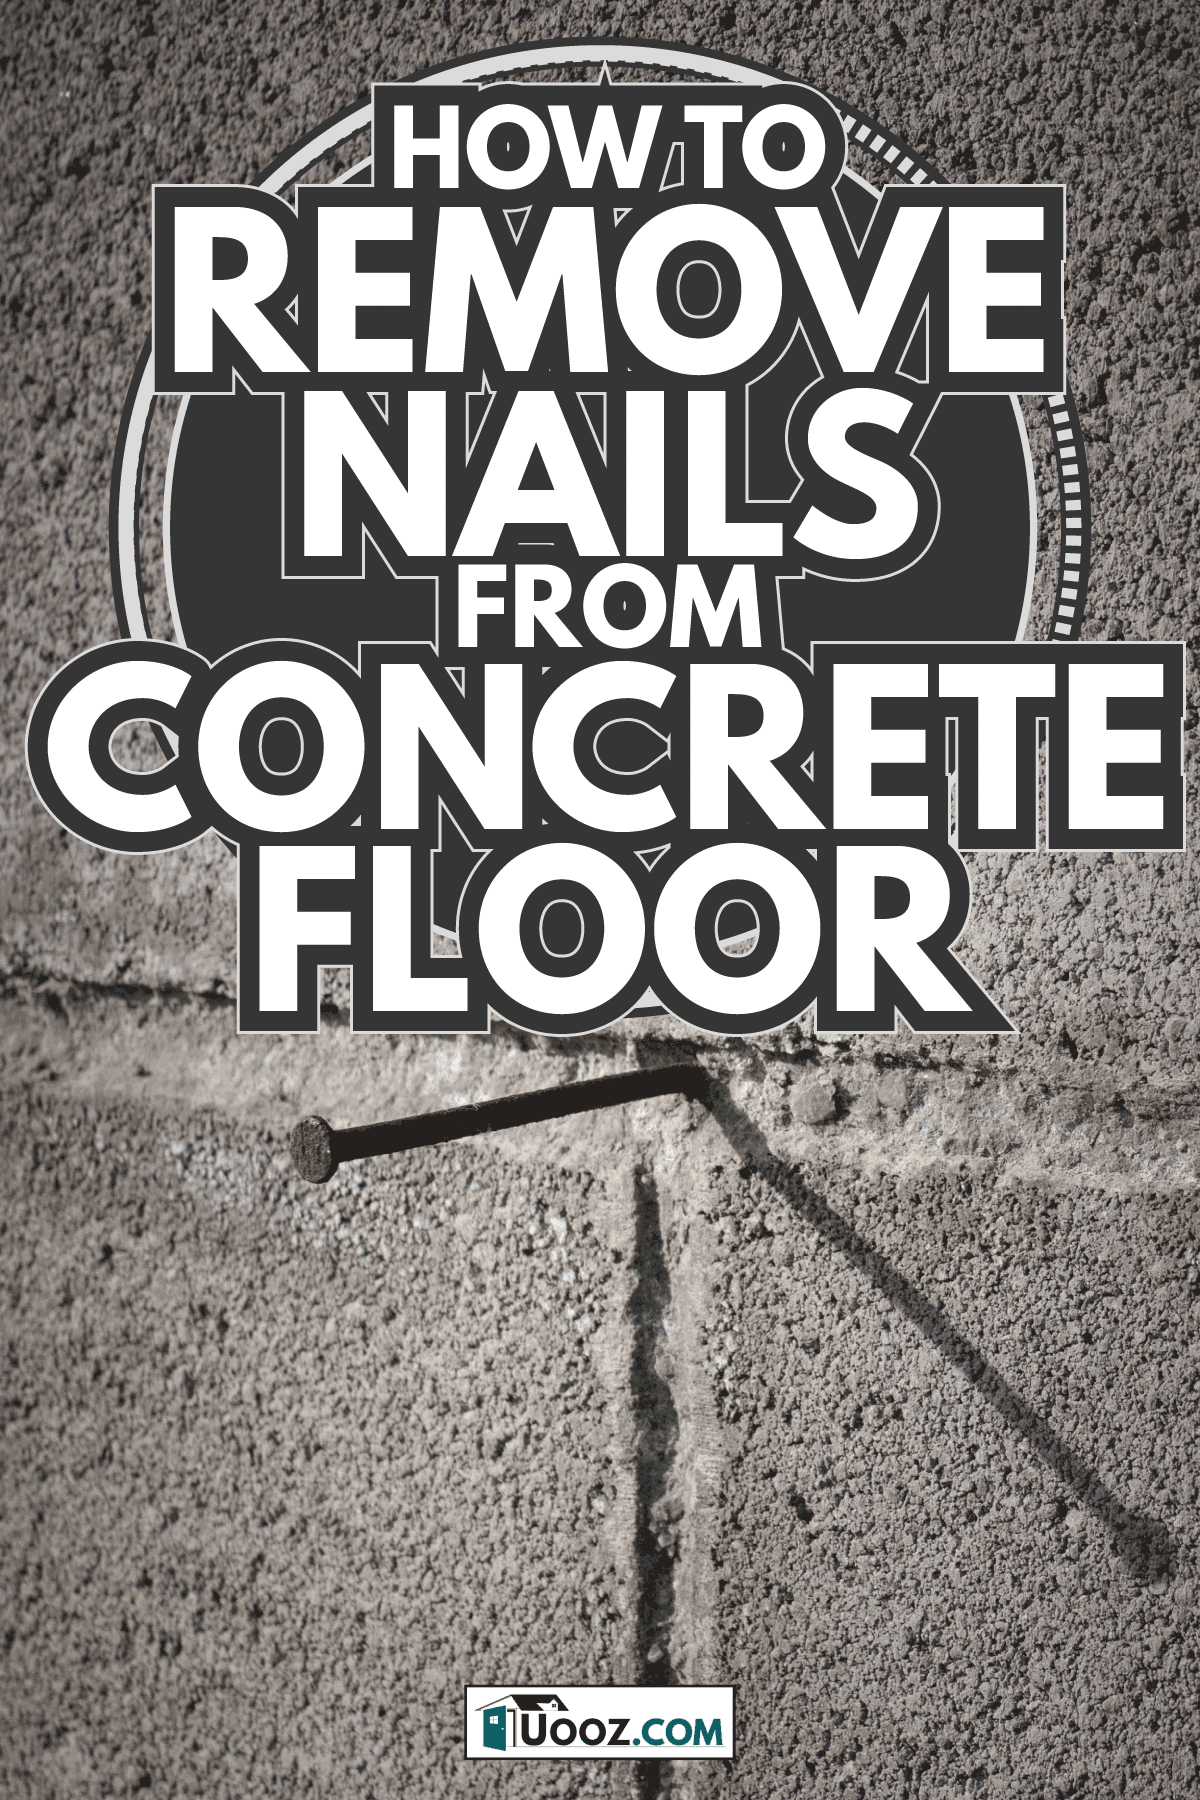 rusty Nail on unfinished wall. How To Remove Nails From Concrete Floor